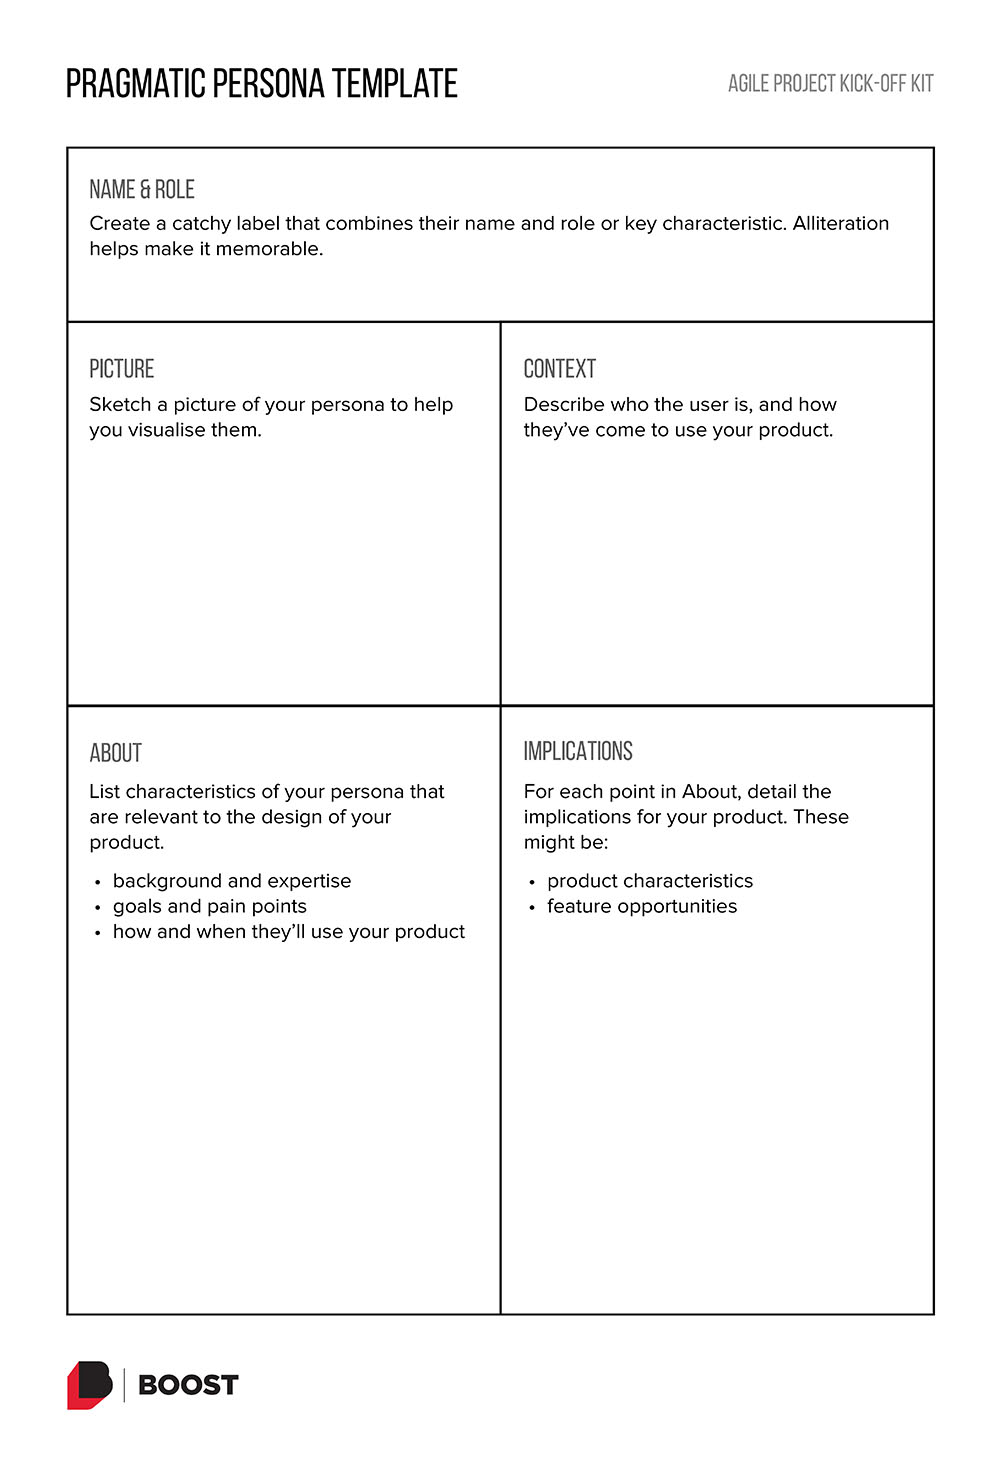 Pragmatic Persona template. Click to get a PDF of the template.